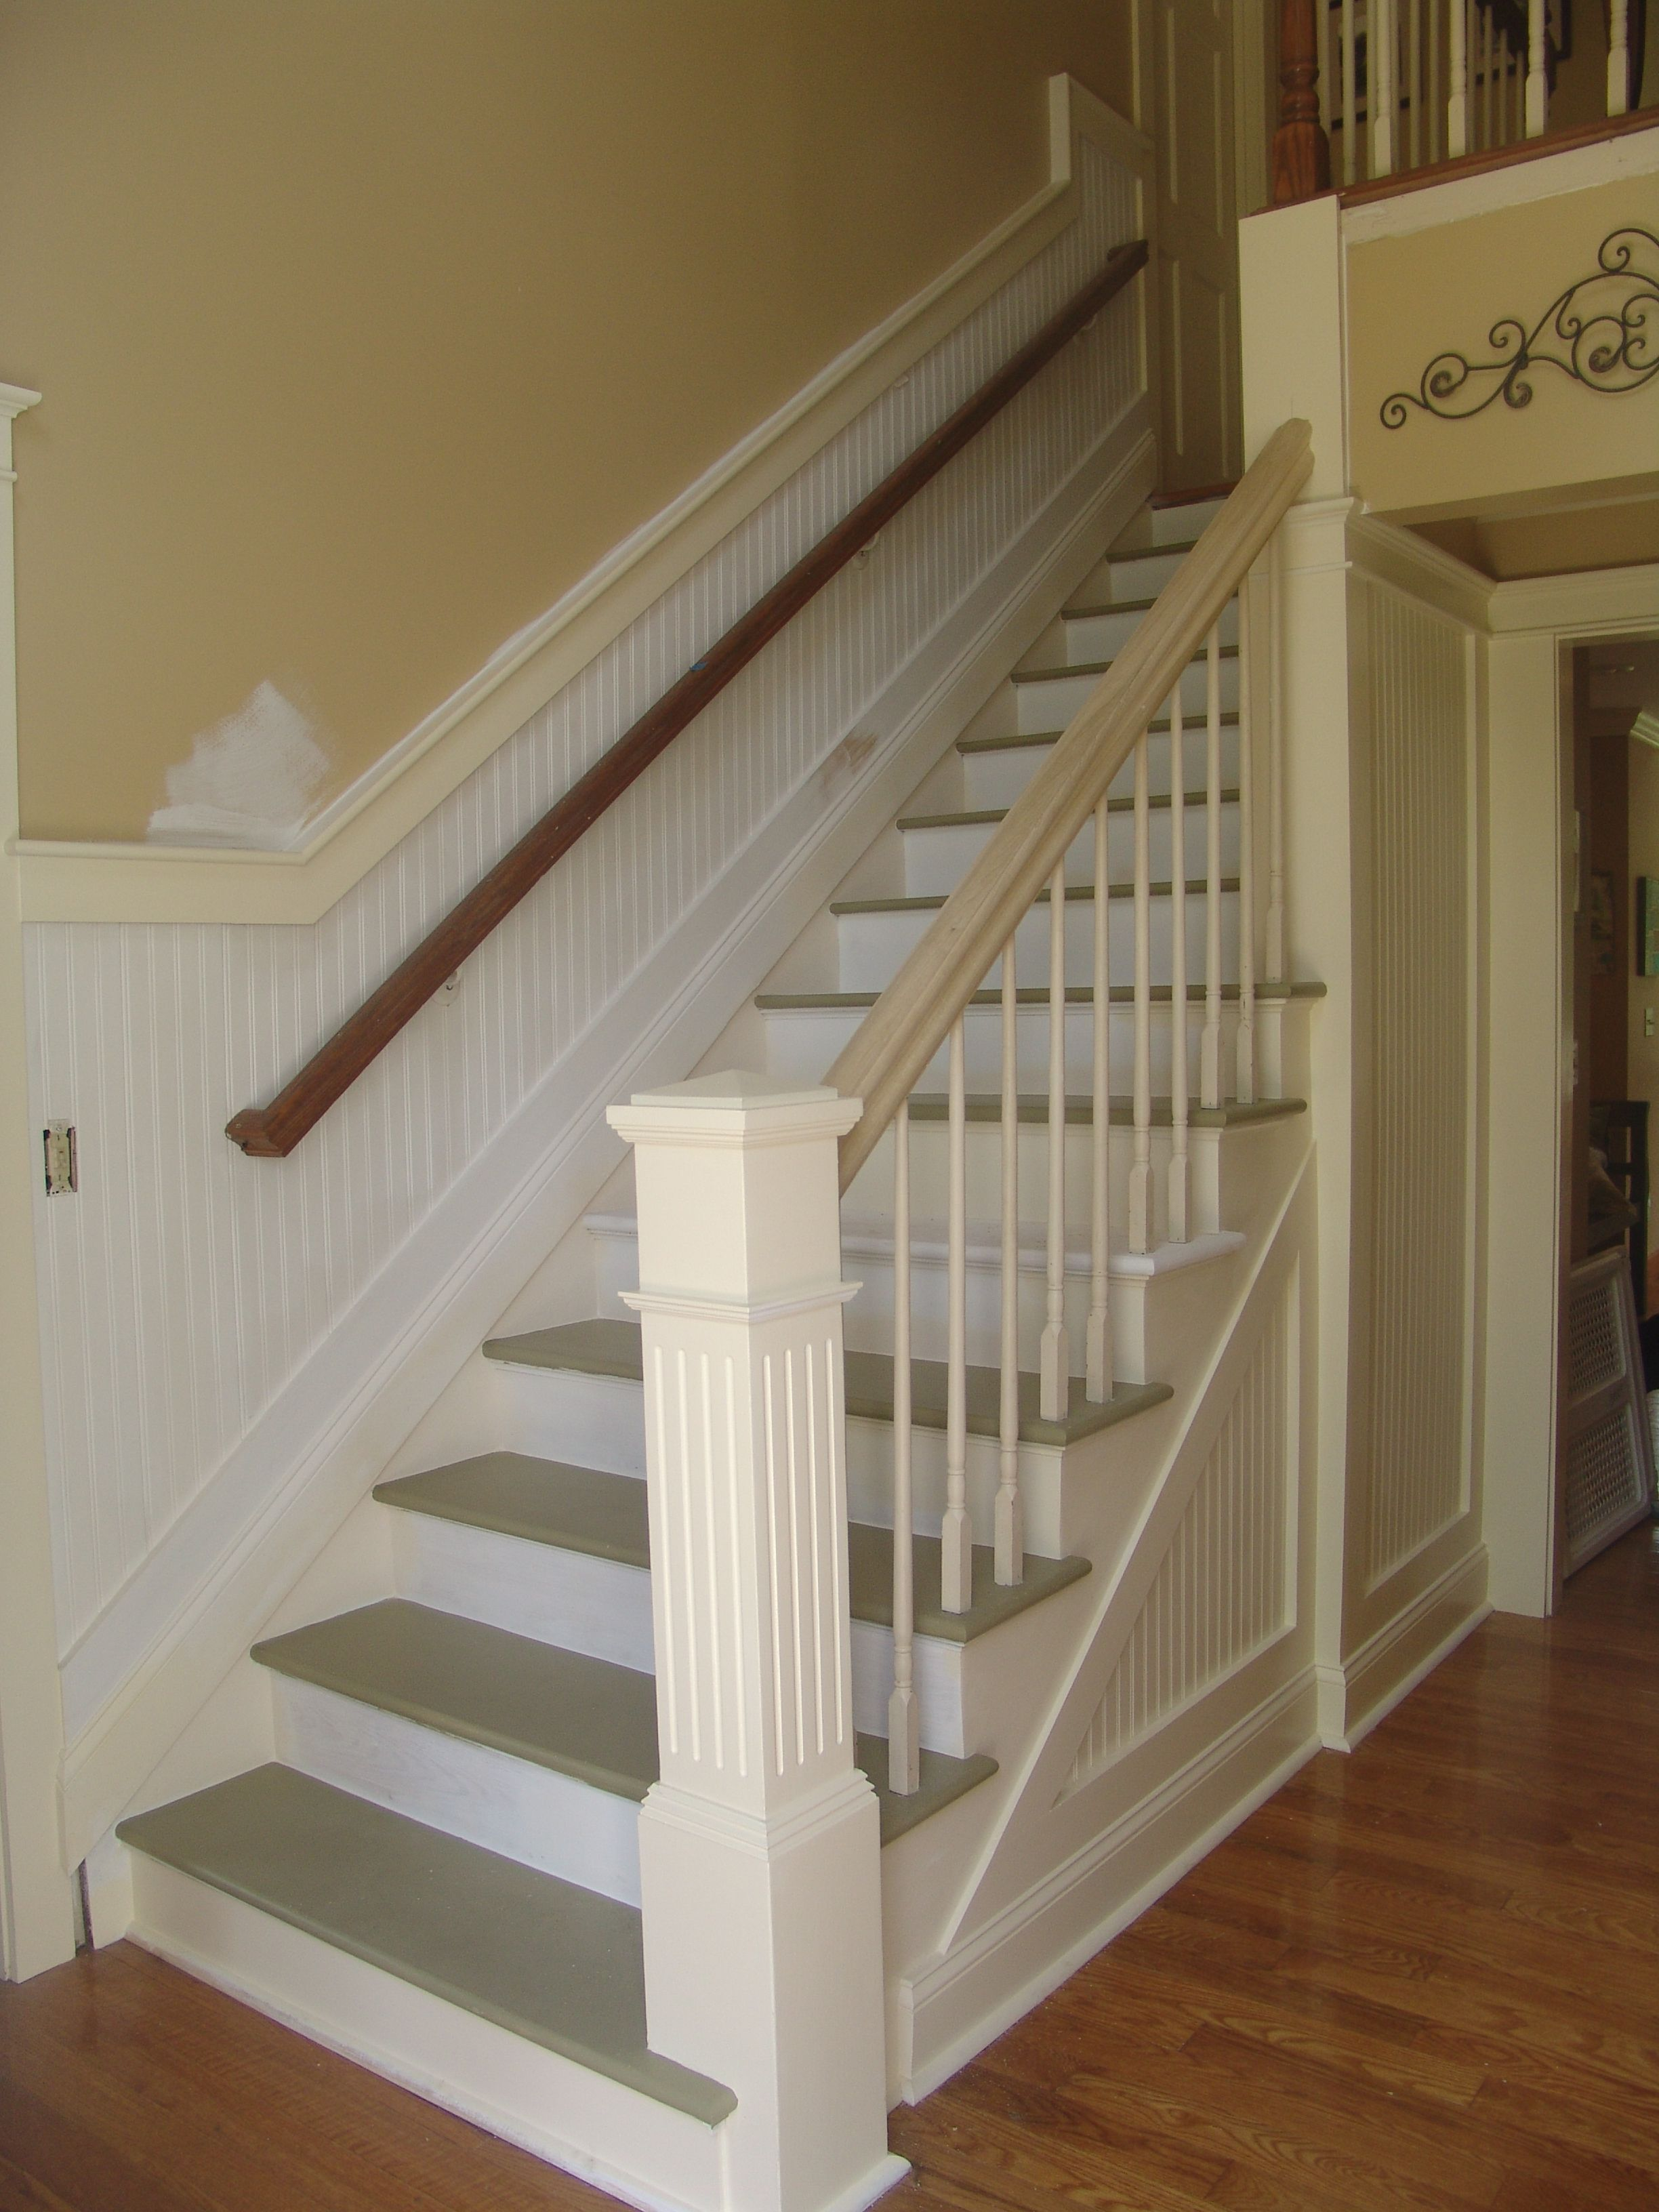 Basement Stair Trim: From Carpet To The Beginnings Of This